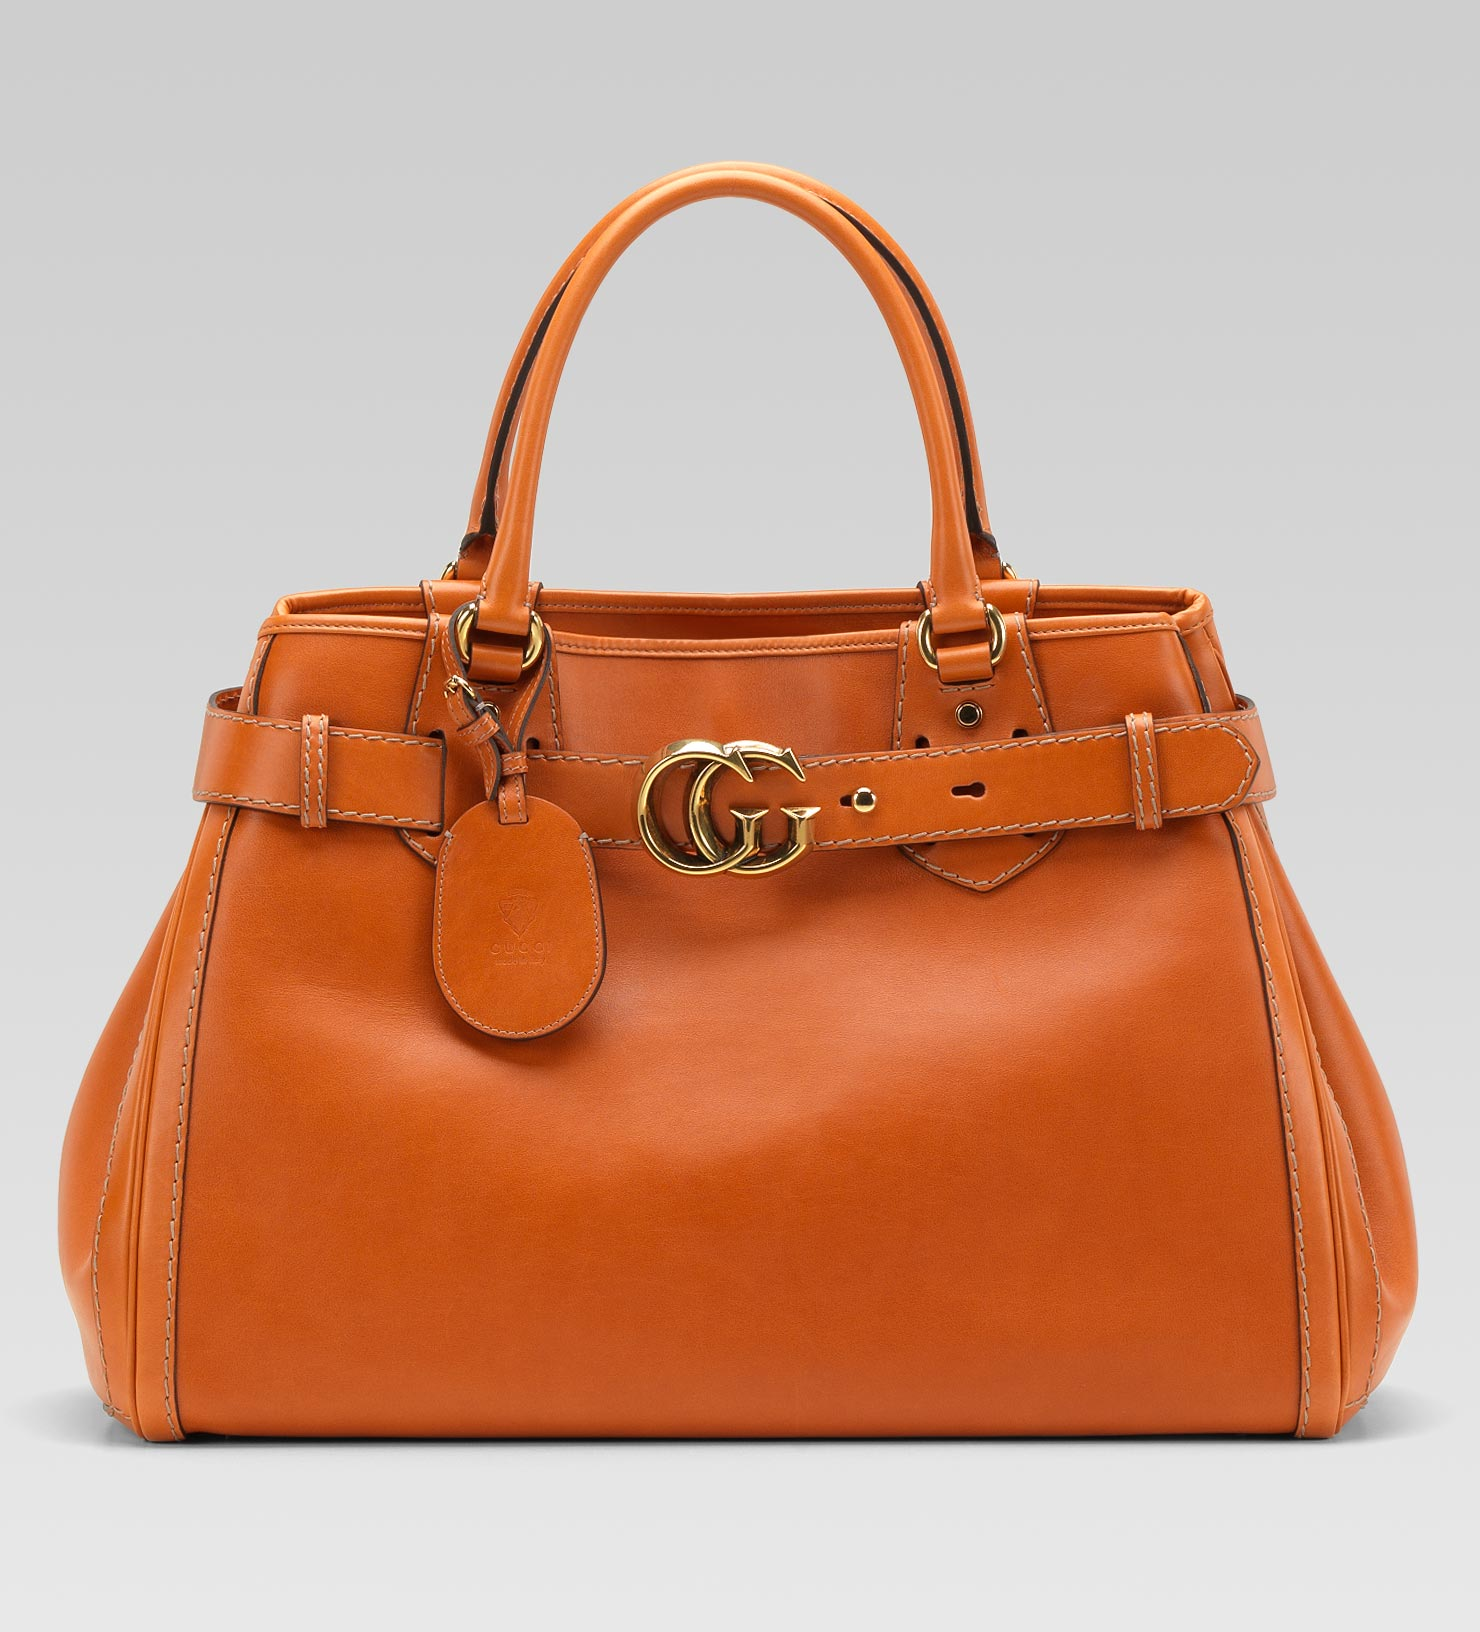 f4762a0b7da Lyst - Gucci Gg Running Large Tote with Double G Detail in Orange